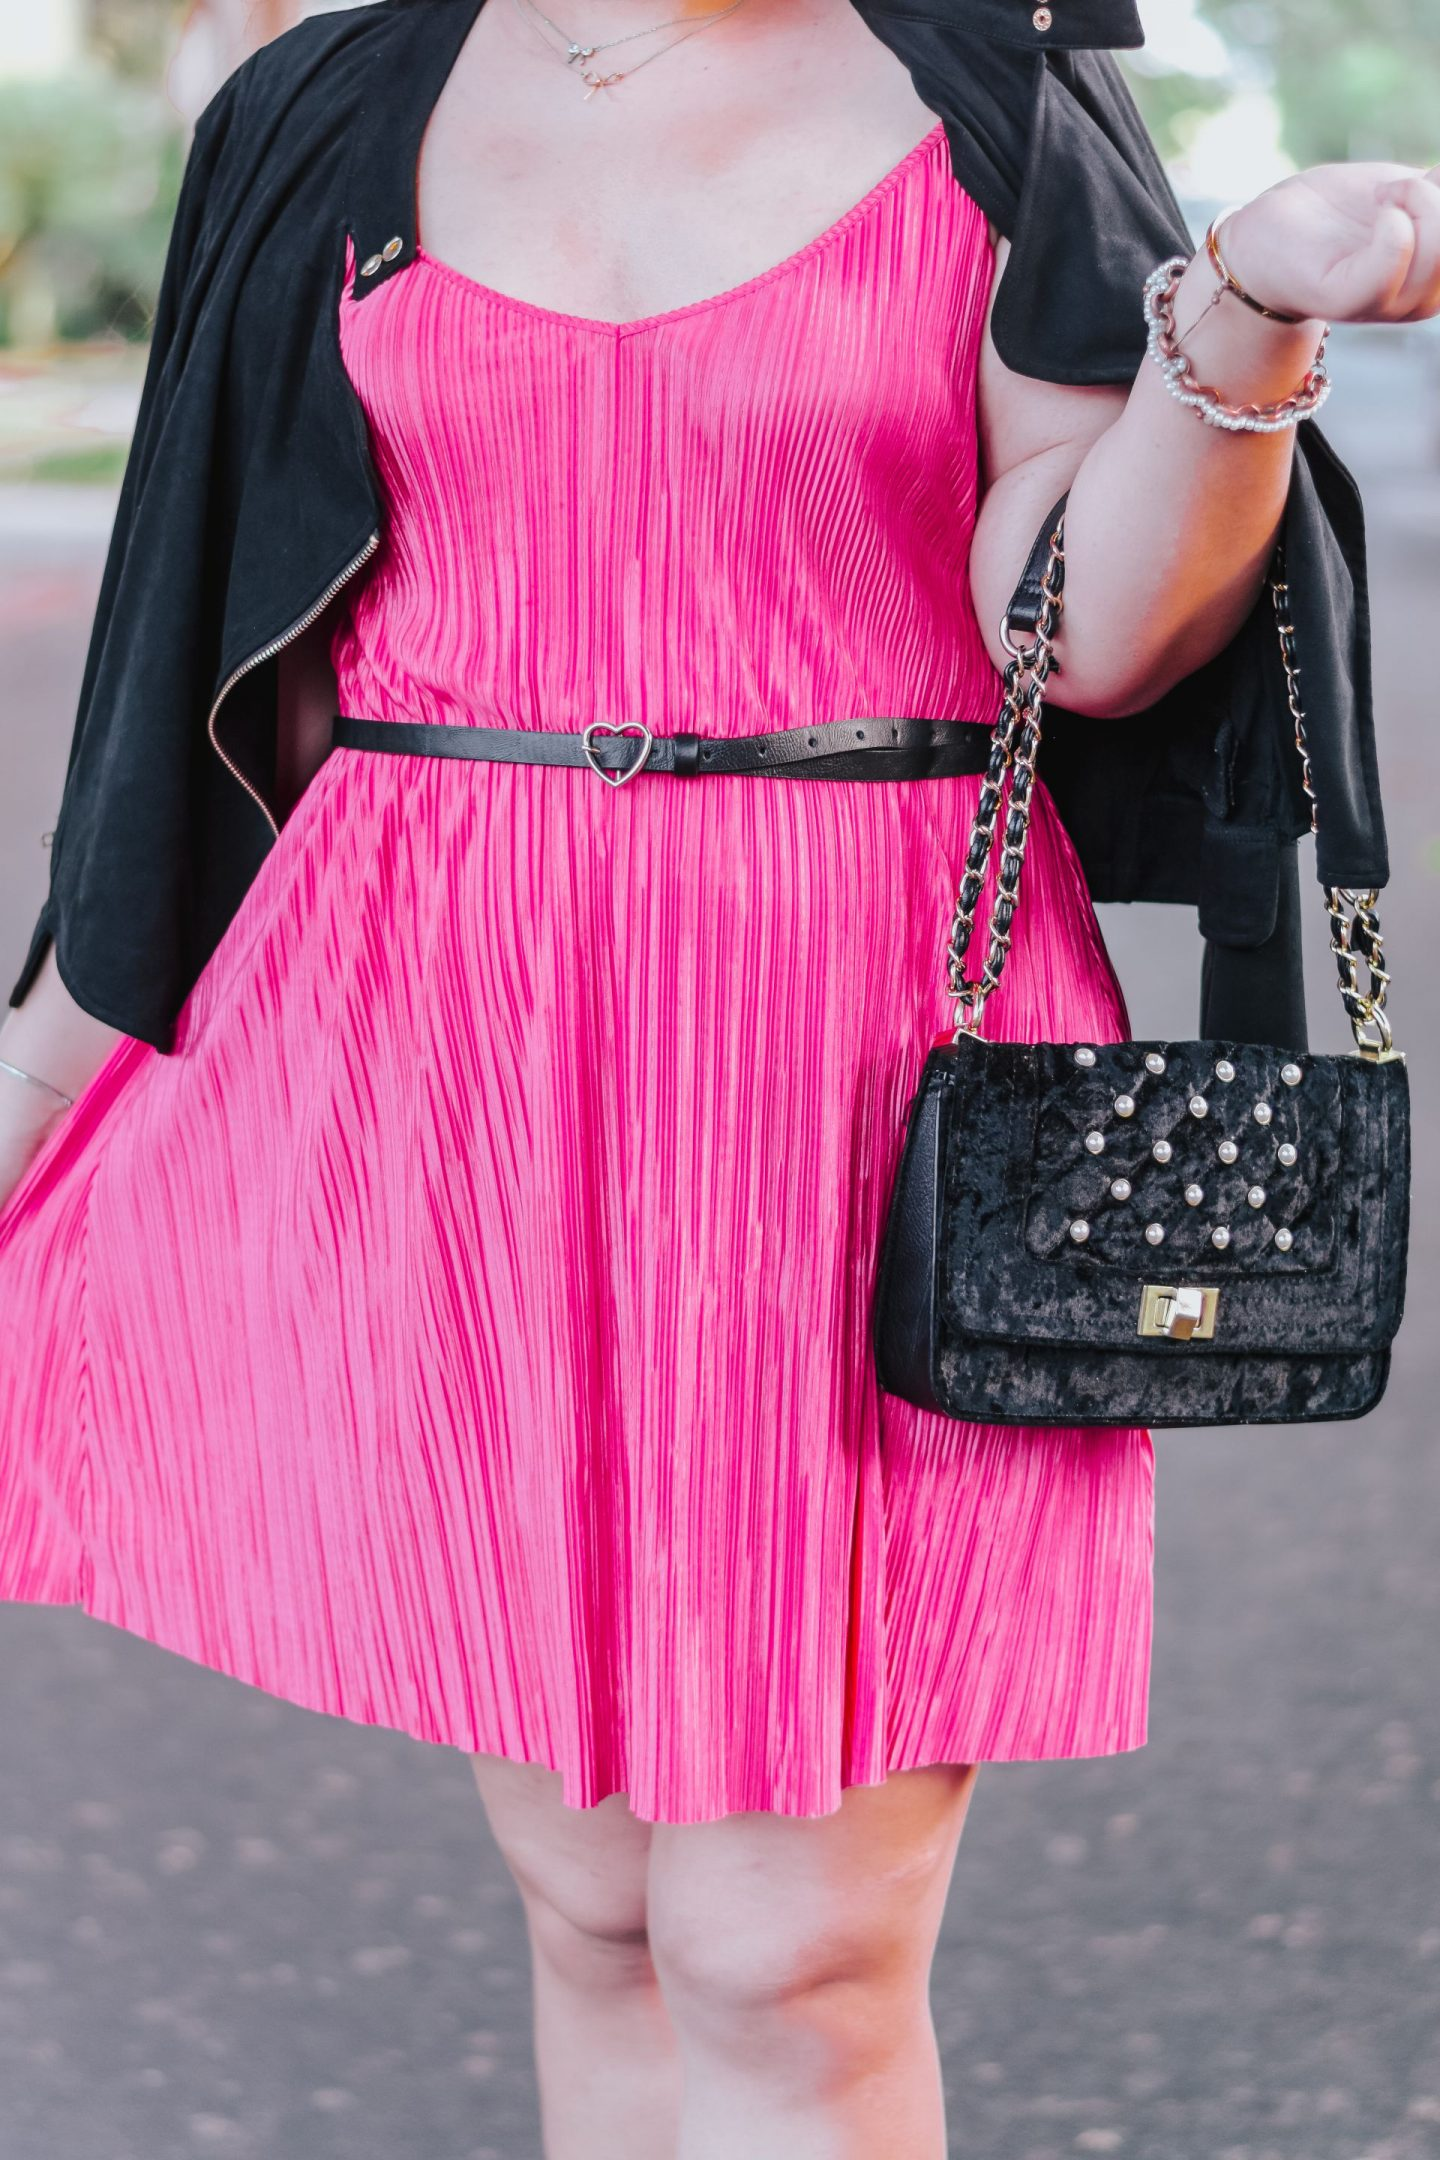 How to Transition Your Summer Dress Into Fall